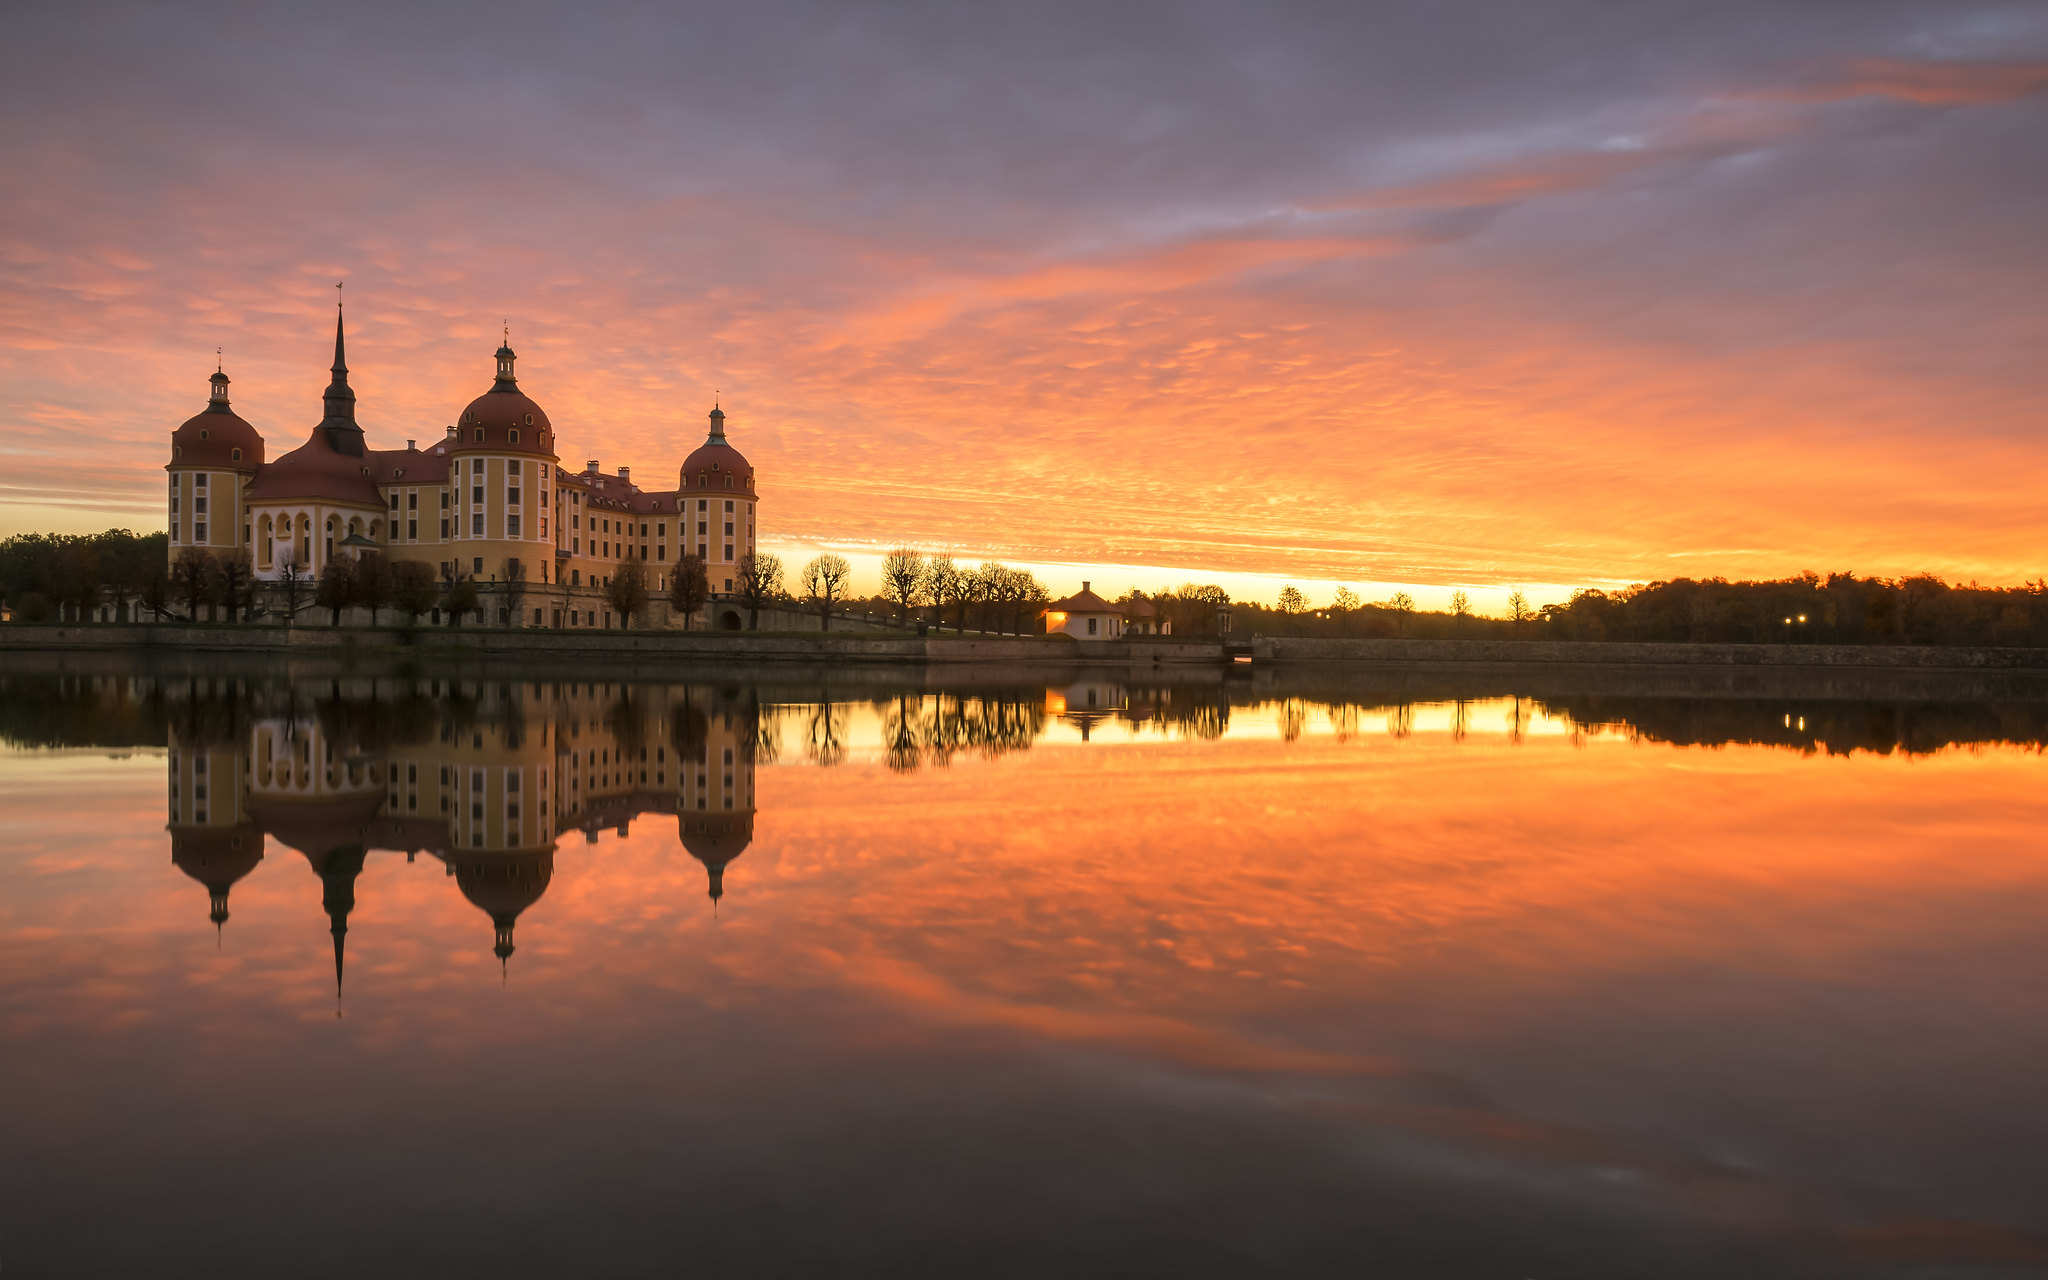 Castle Moritzburg - Germany - Sunrise